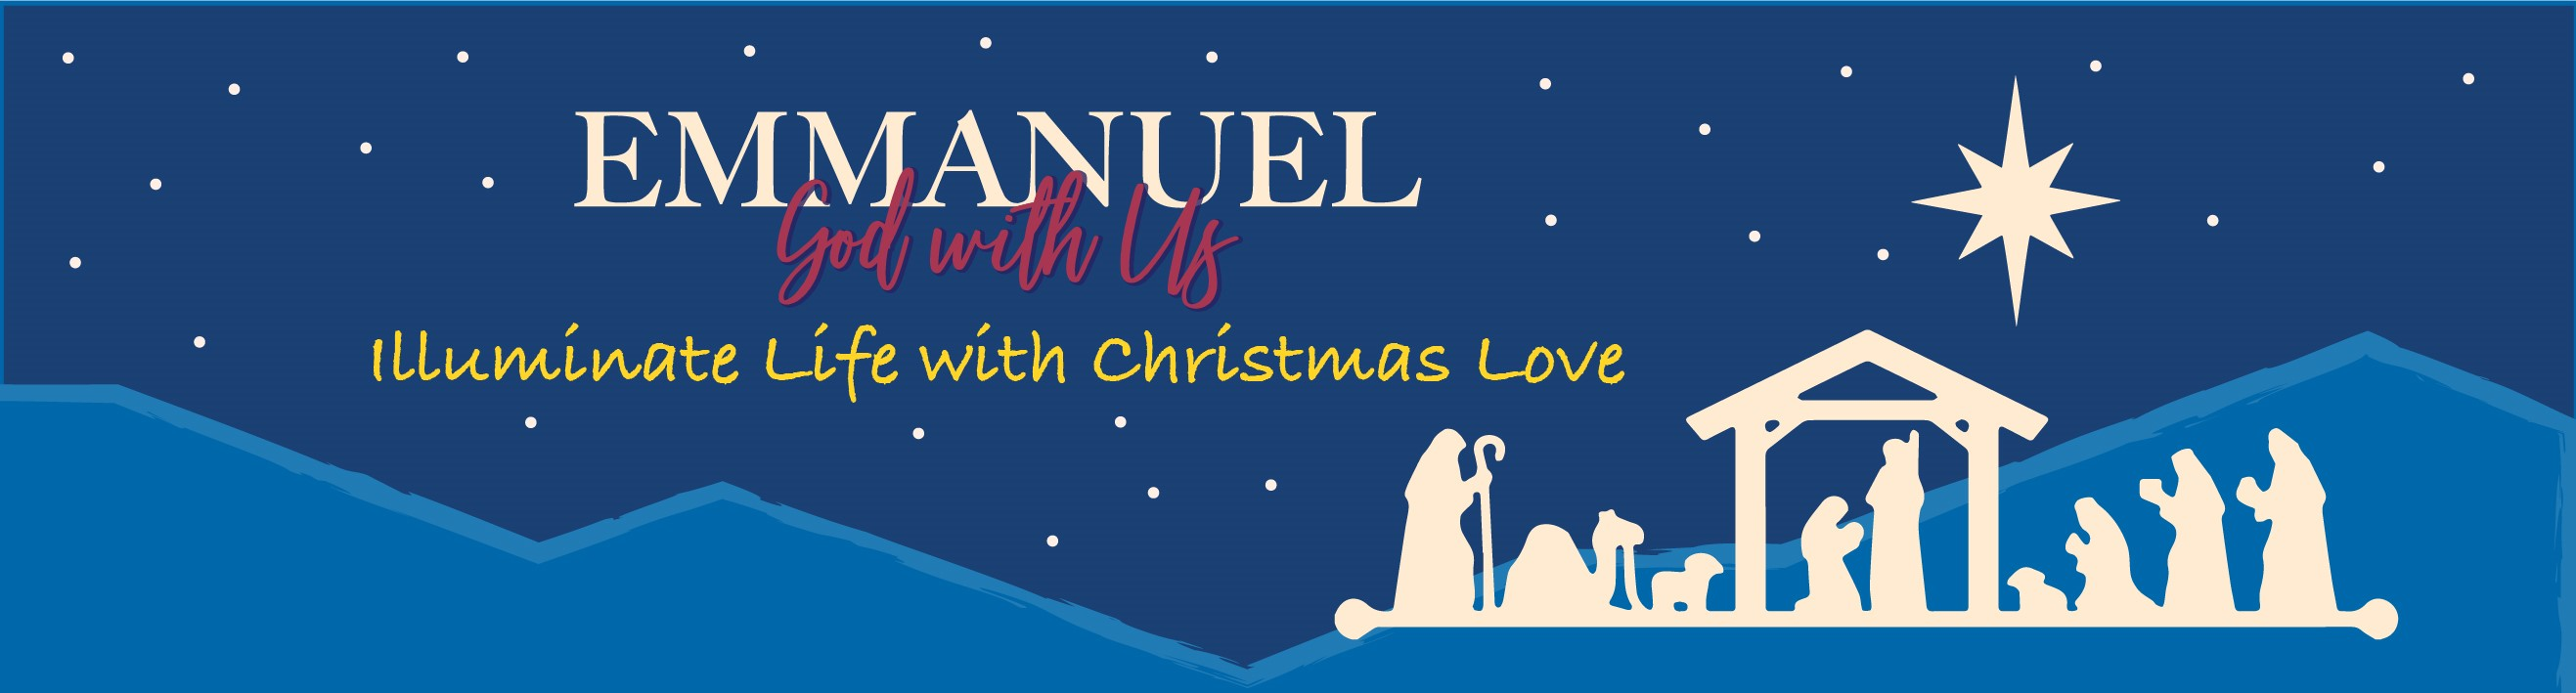 2020 Christmas Event Emmanuel God with Us Event